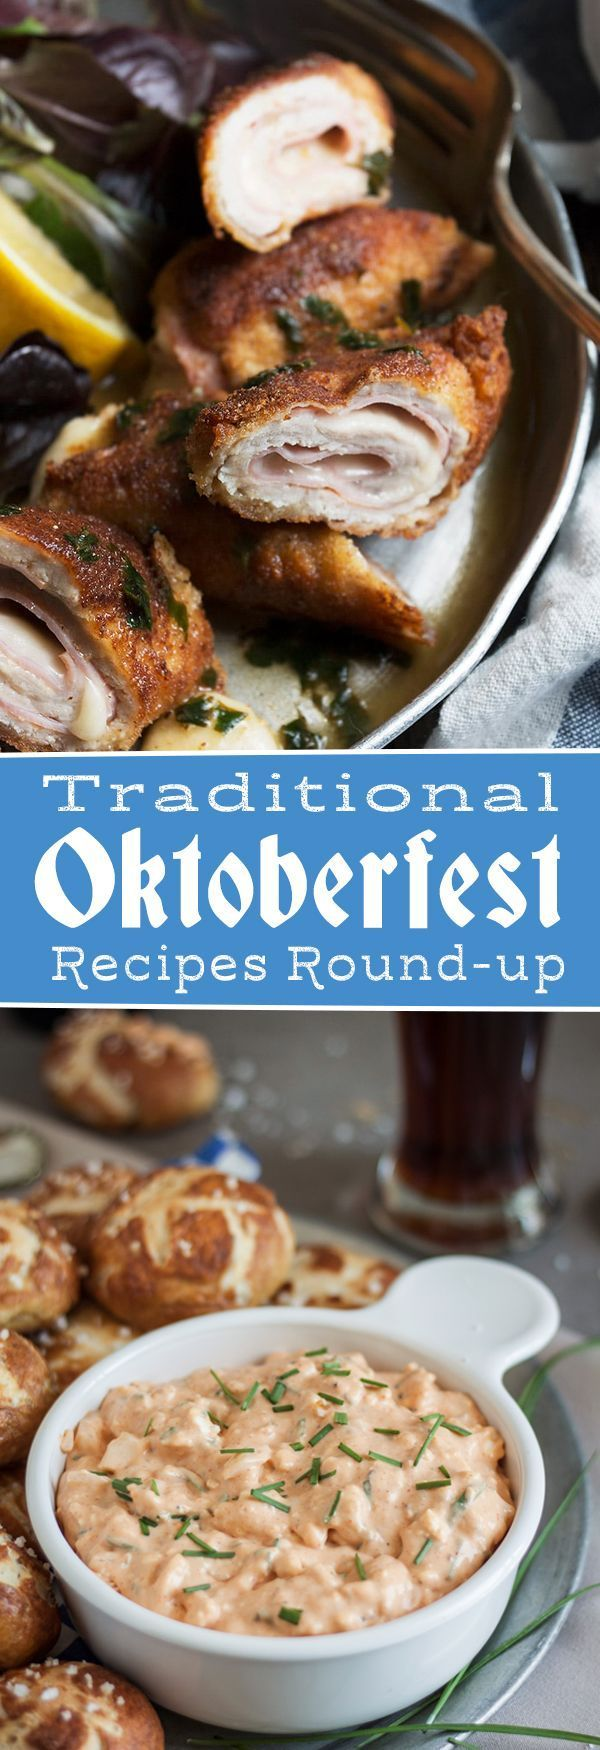 Oktoberfest Food Favorites - Traditional Appetizers, Entrees and Desserts